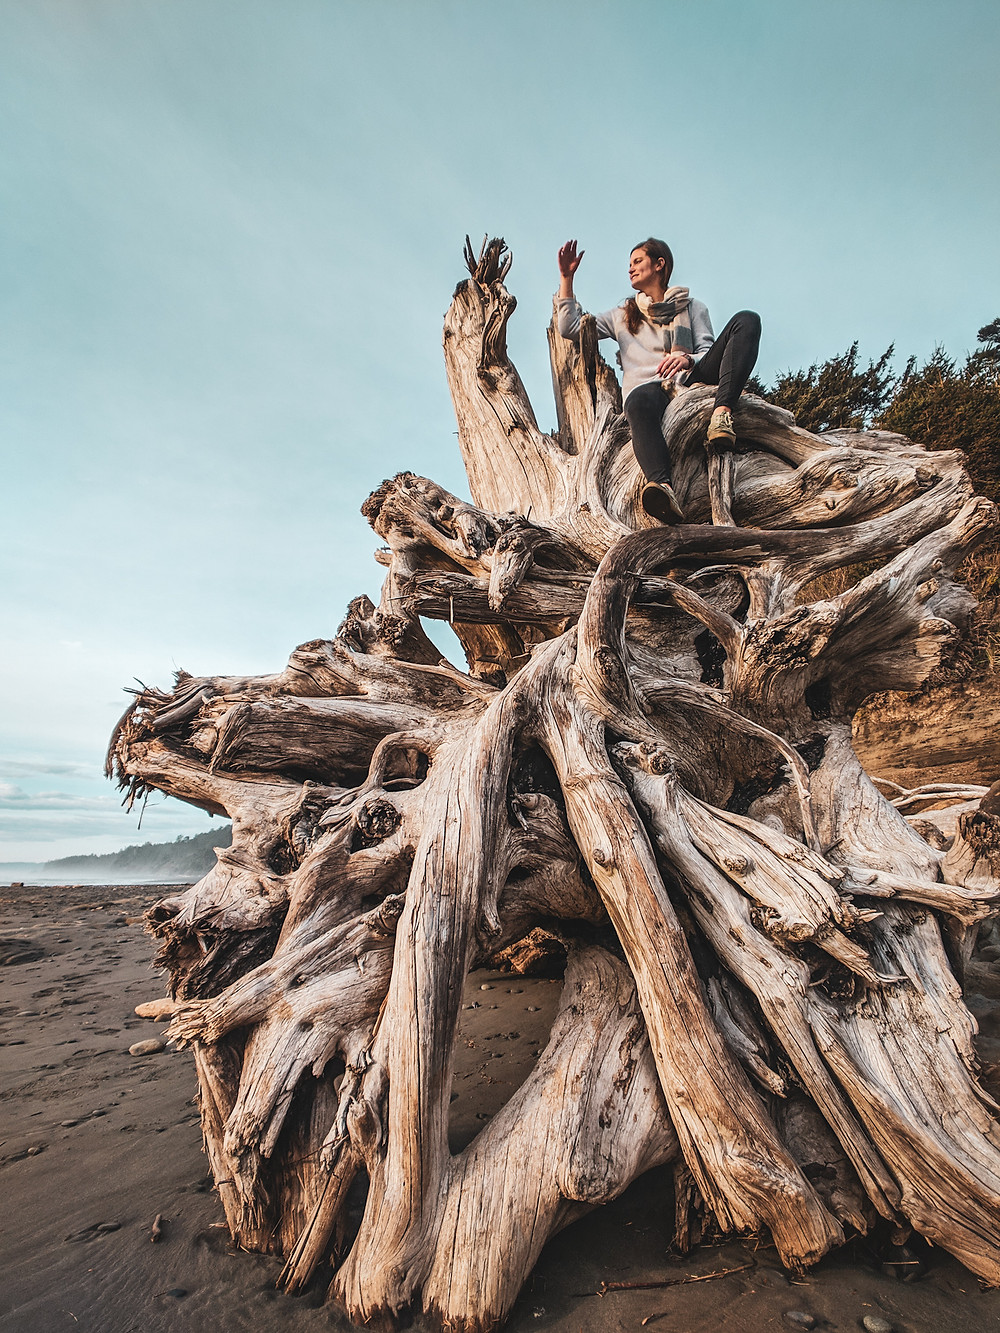 Exploring Kalaloch Beach 4 near Forks, Washington during our PNW road trip.